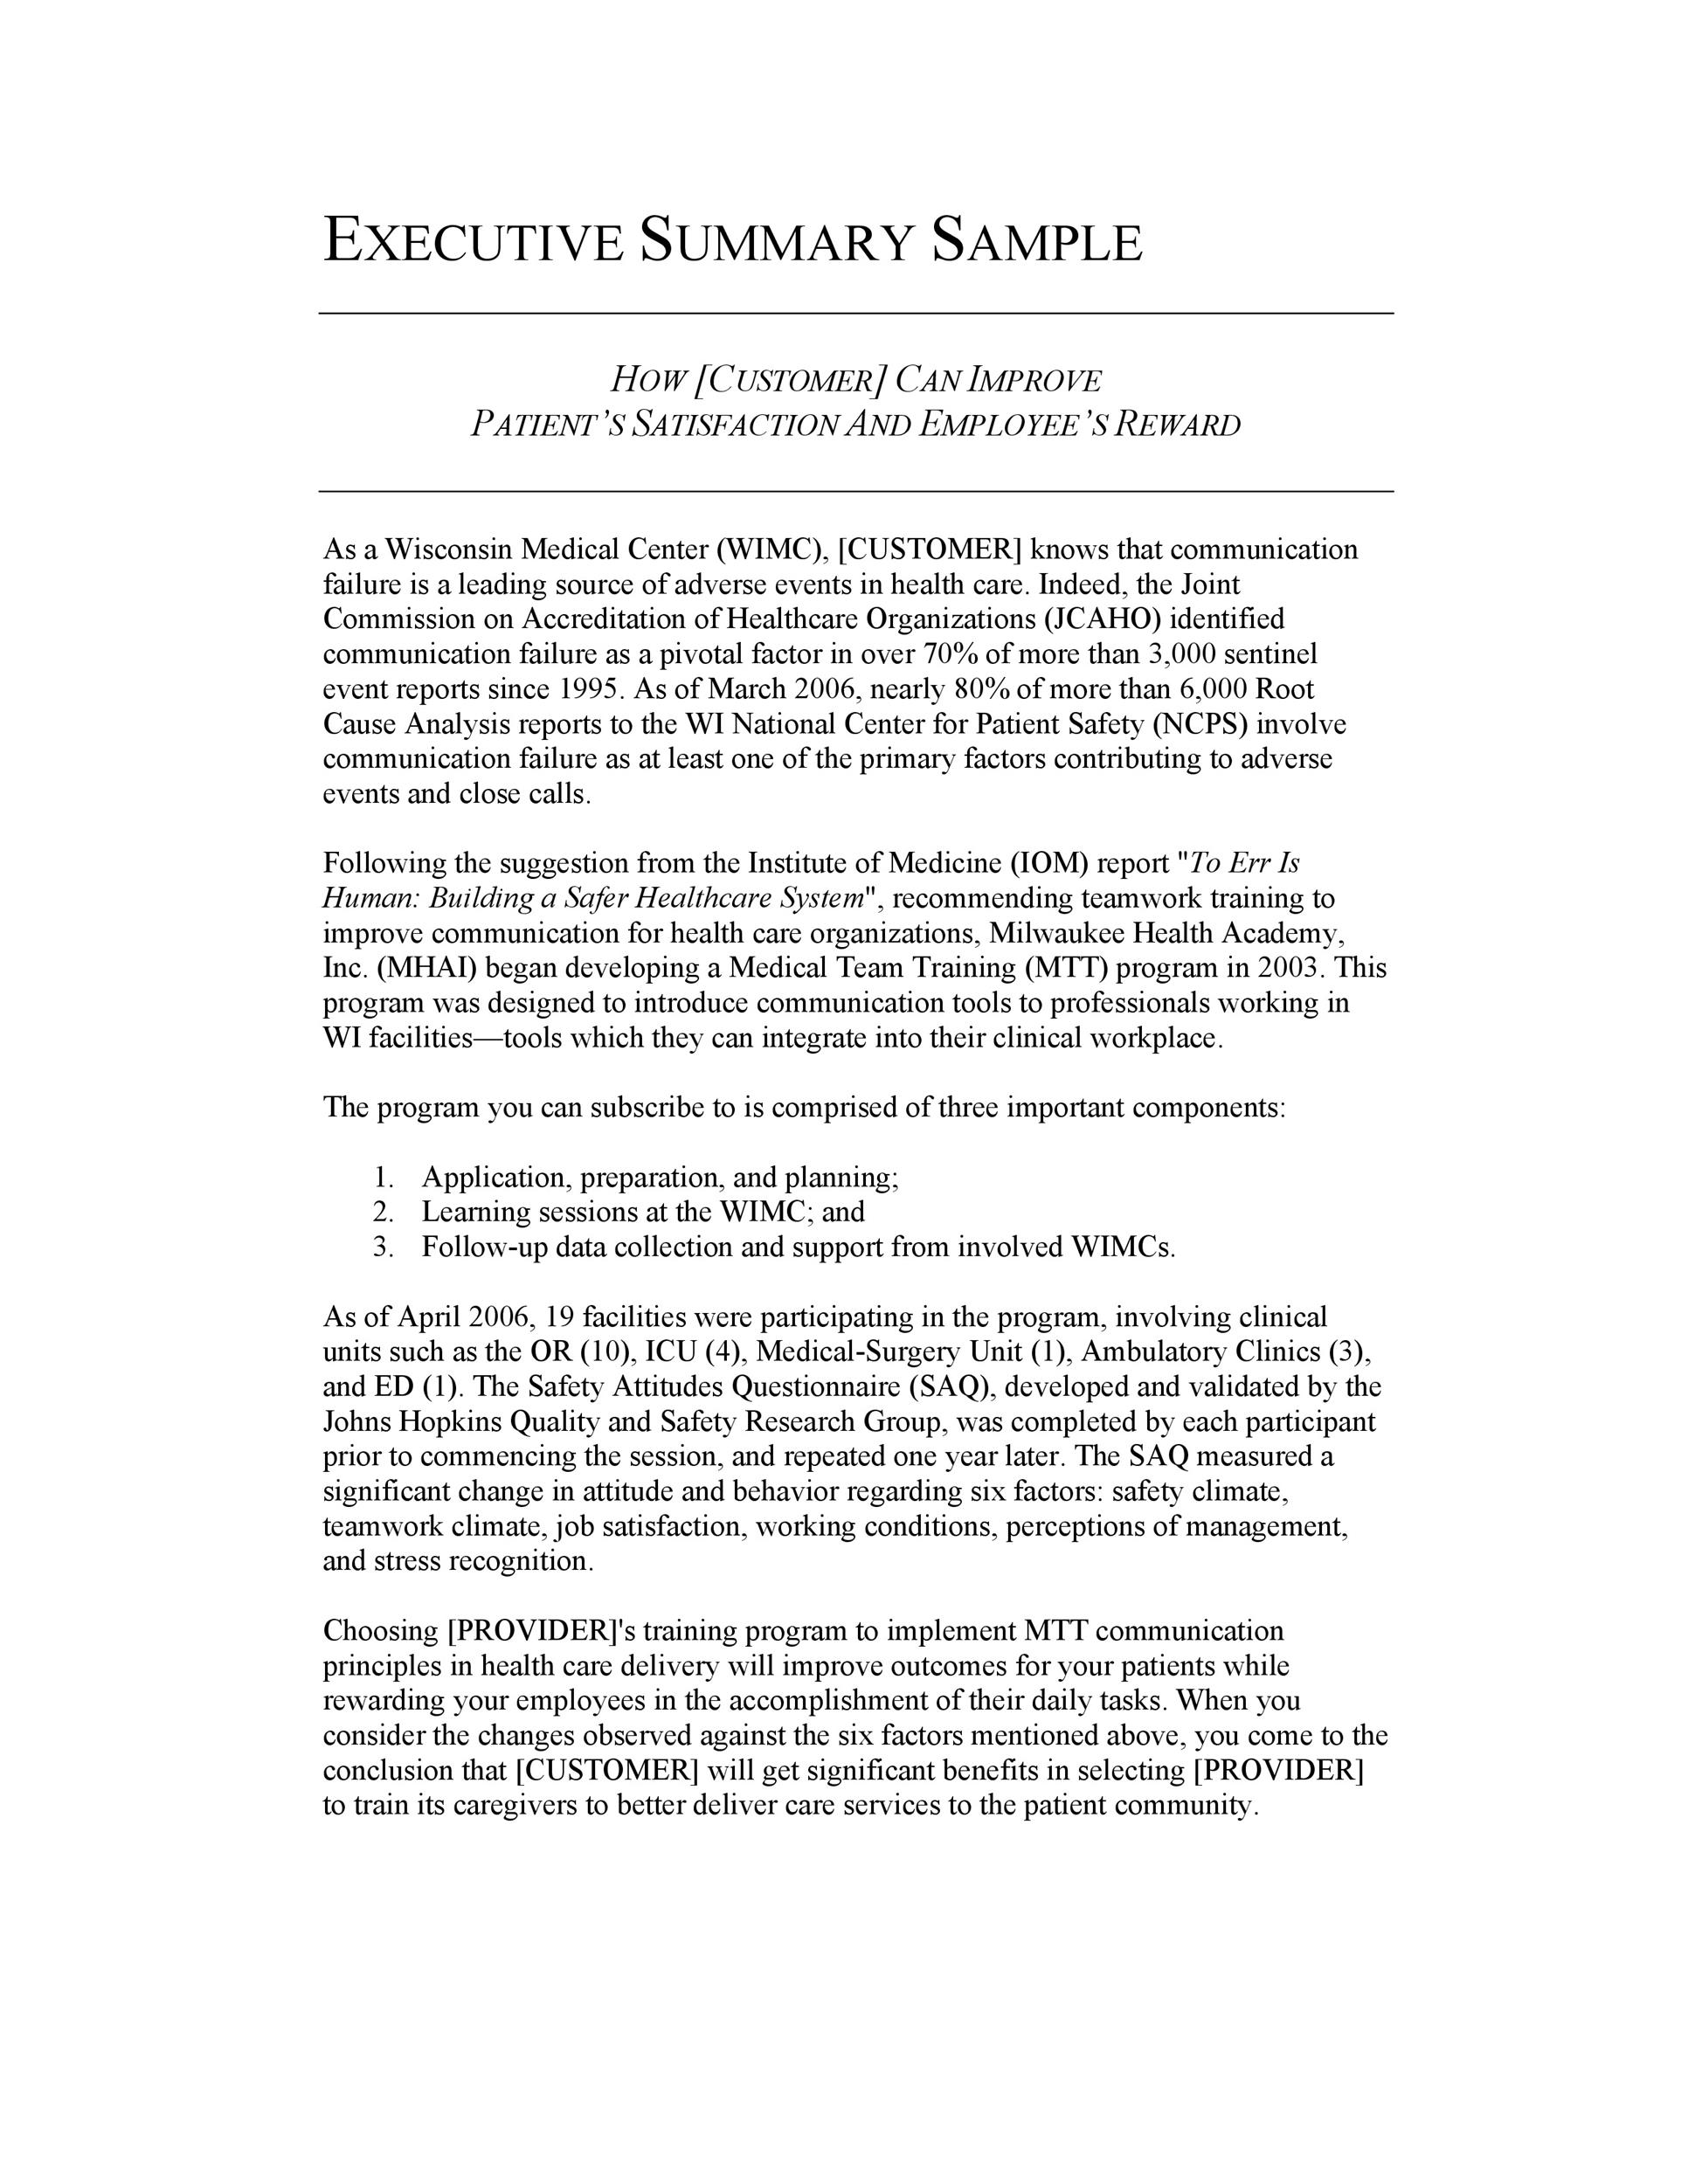 Free Executive Summary Template 28